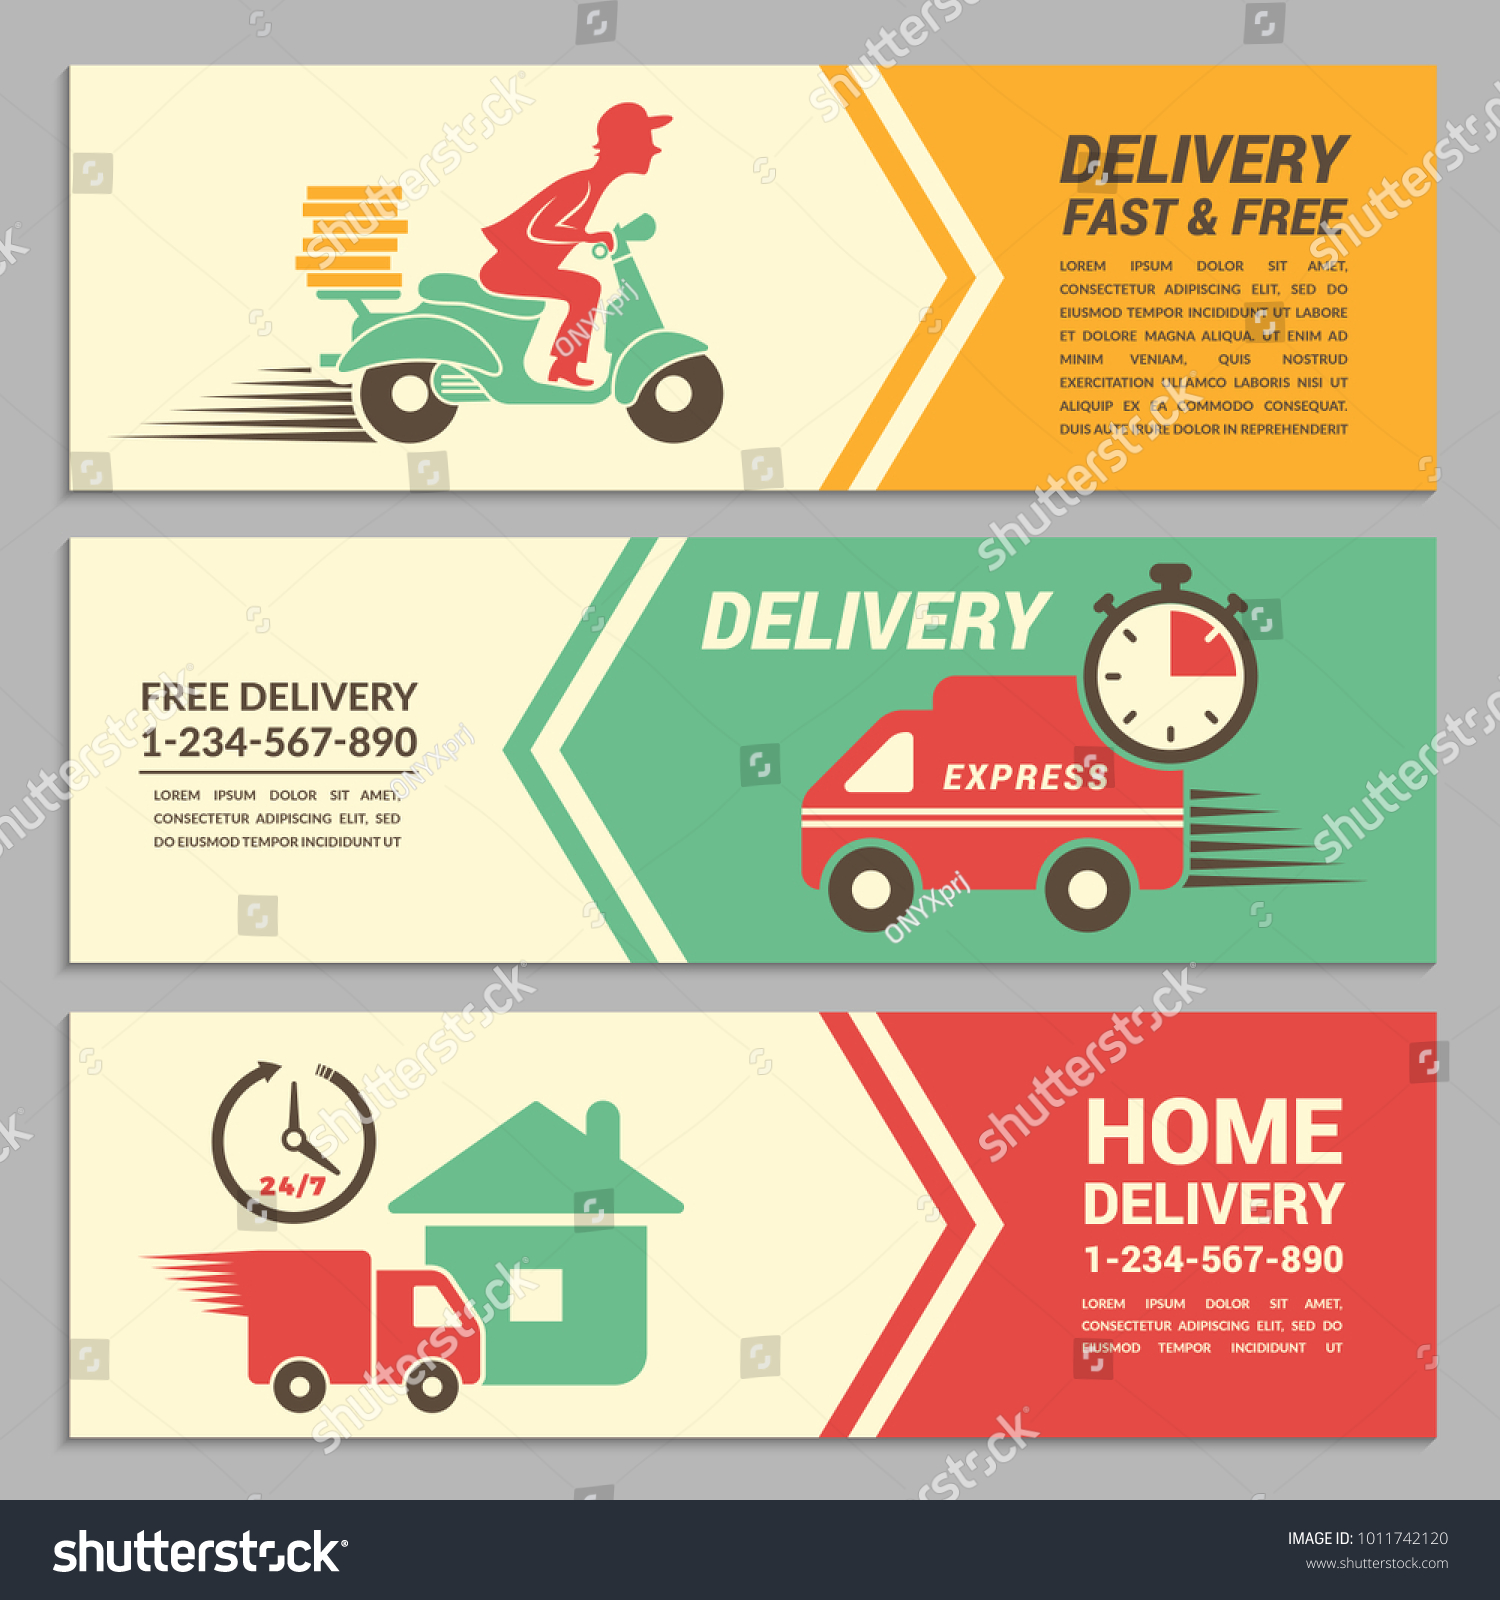 Vector Banners Design Template Fast Delivery Stock Vector (2018 ...